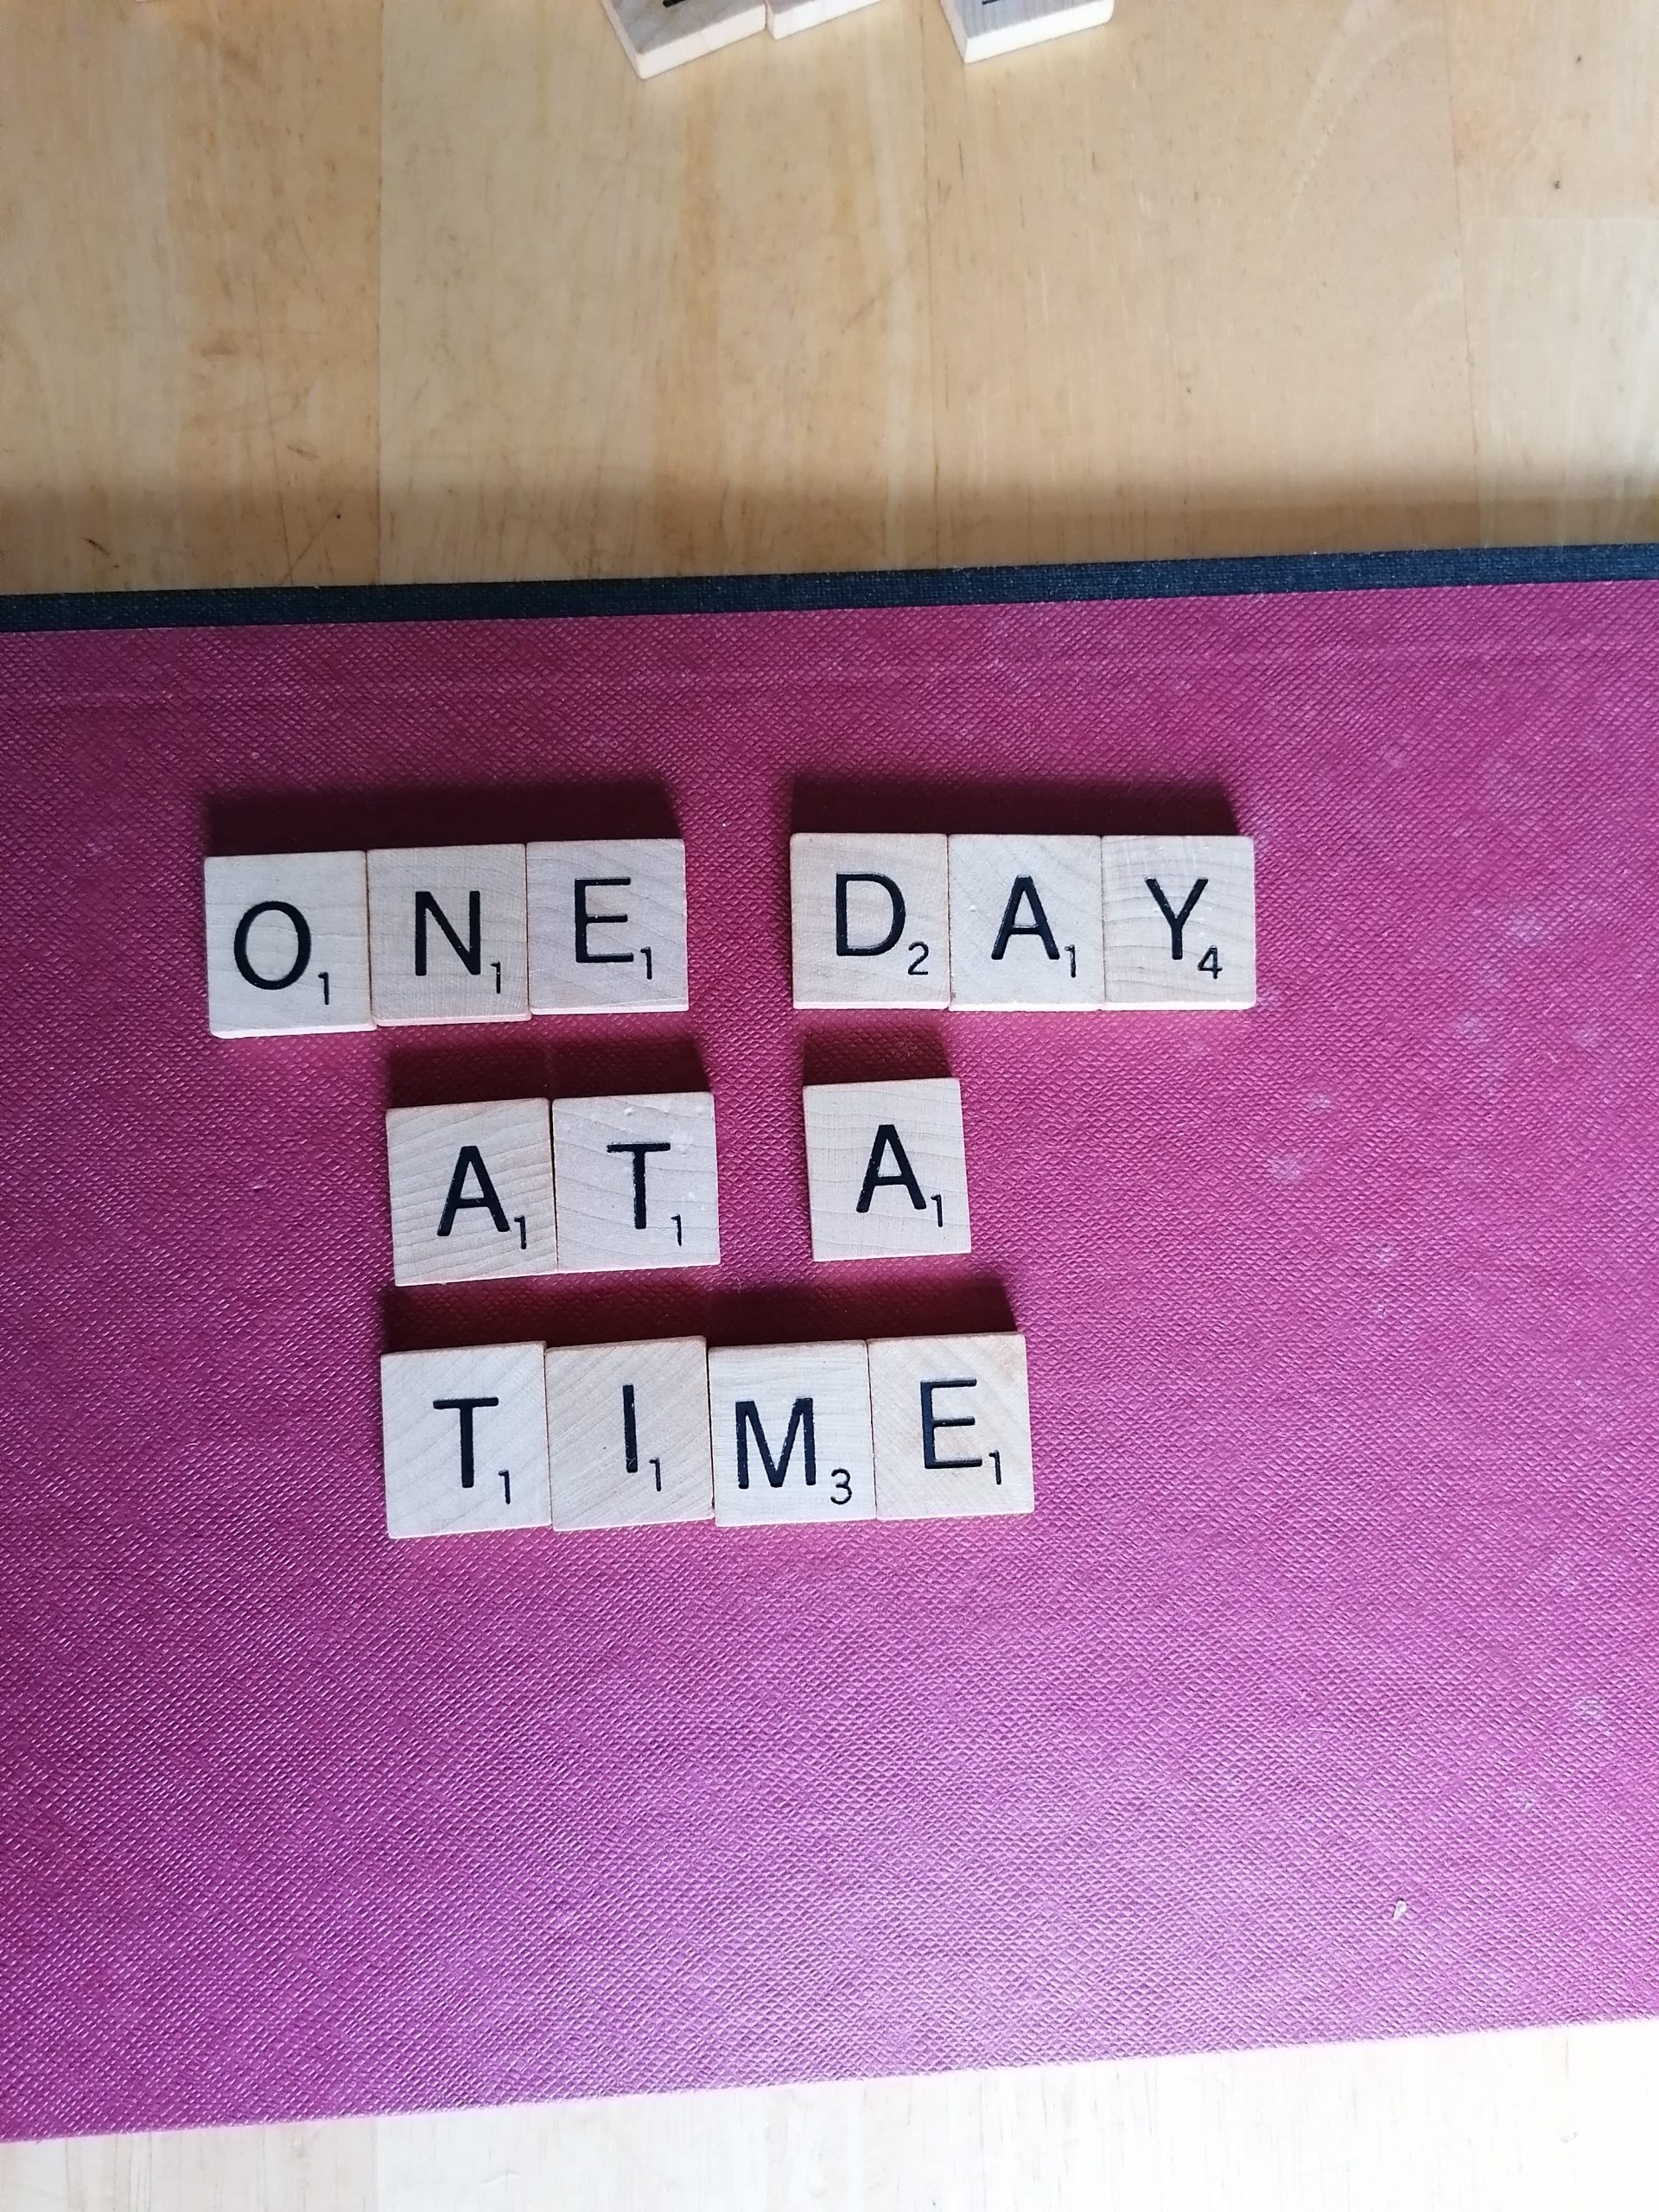 The significance of a single day